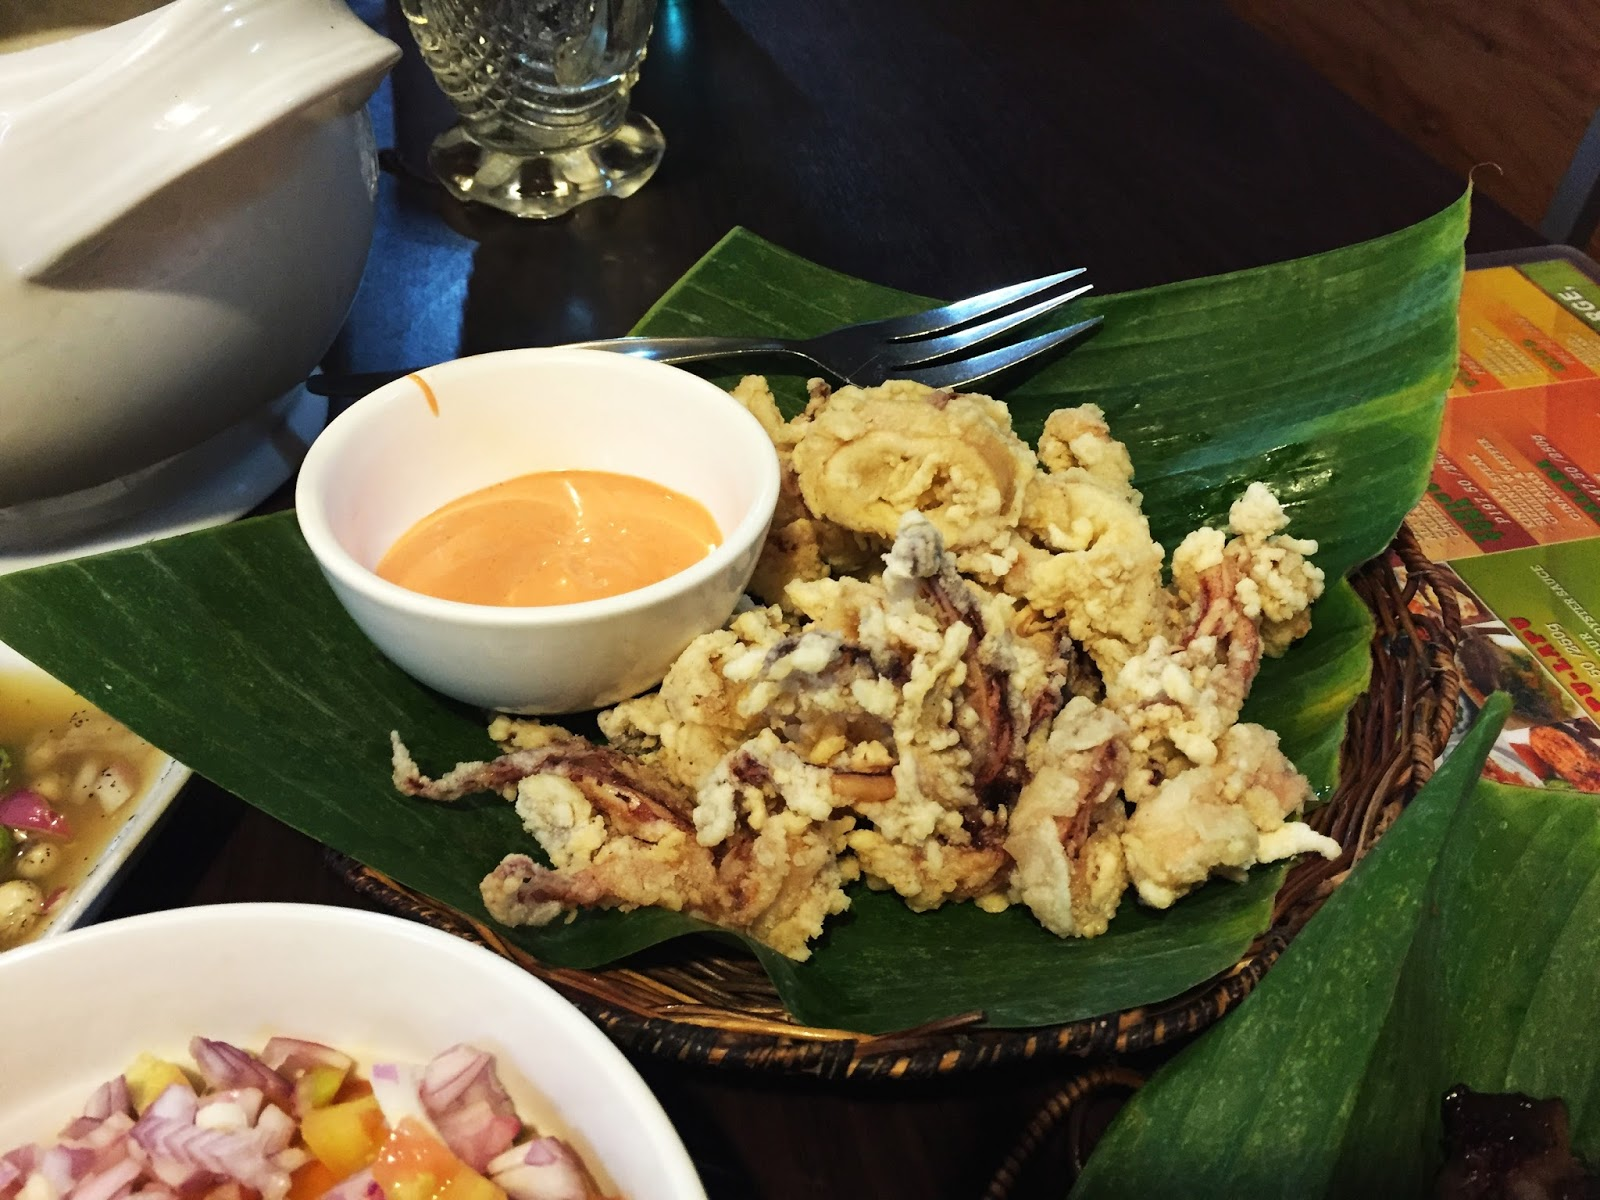 Filipino Food at dampa sa Tarlac Seafood Restaurant: Squid Calamares